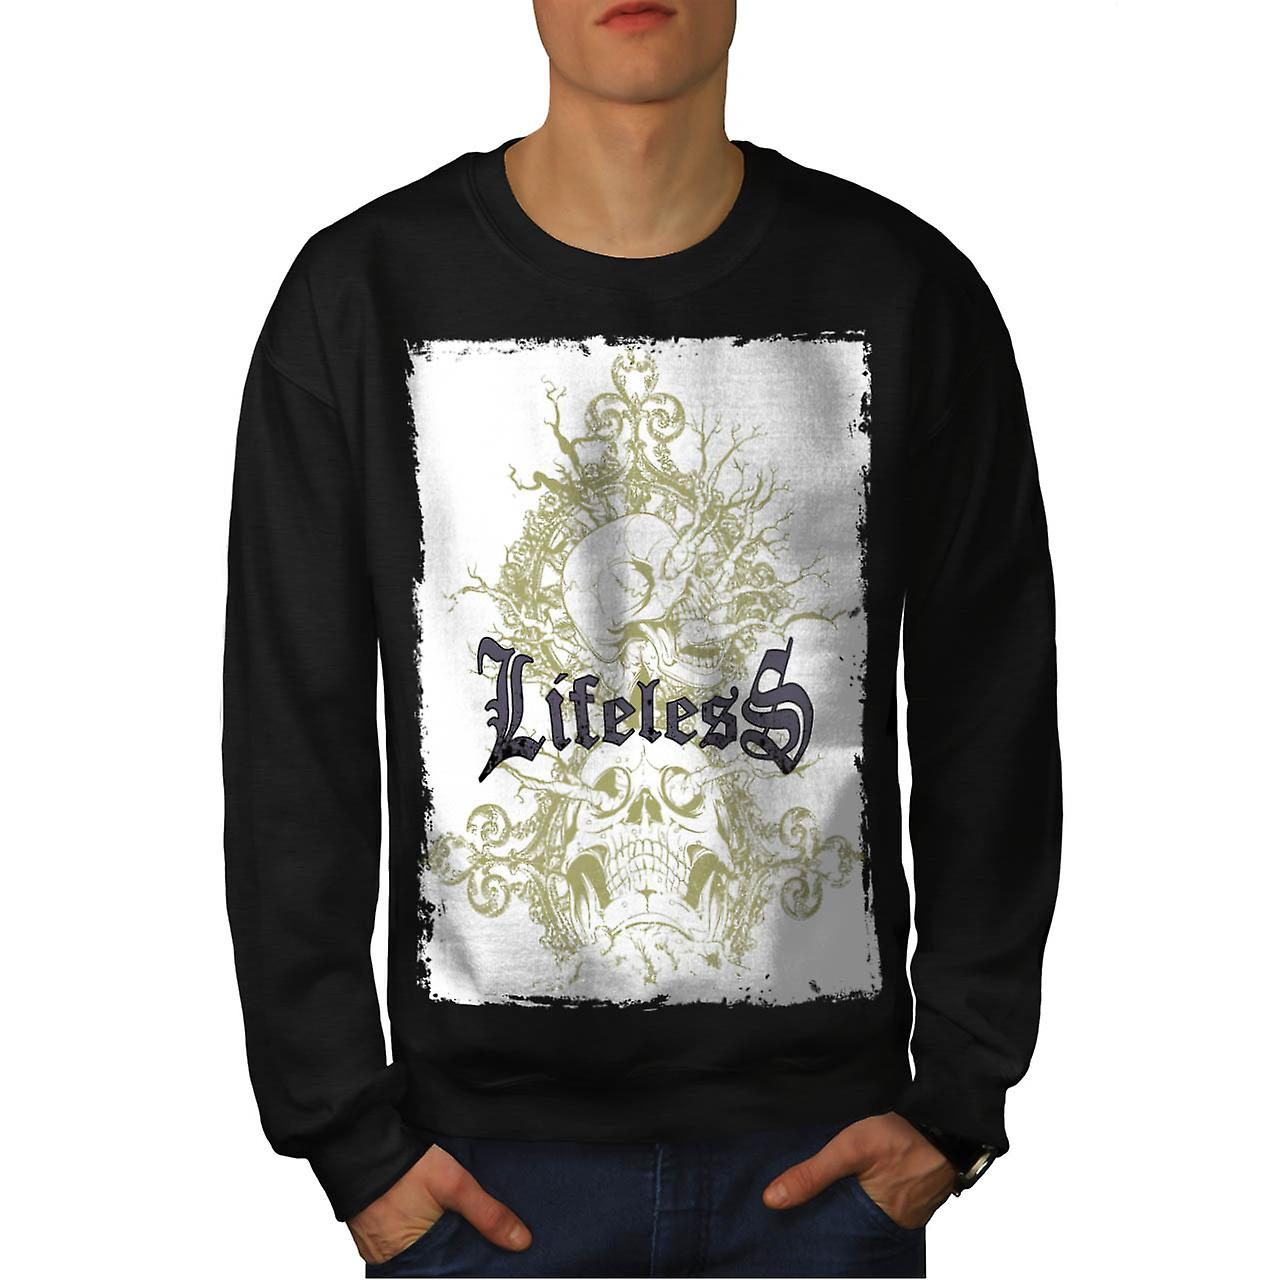 Lifeless Soul Skull Grave Yard Men Black Sweatshirt | Wellcoda